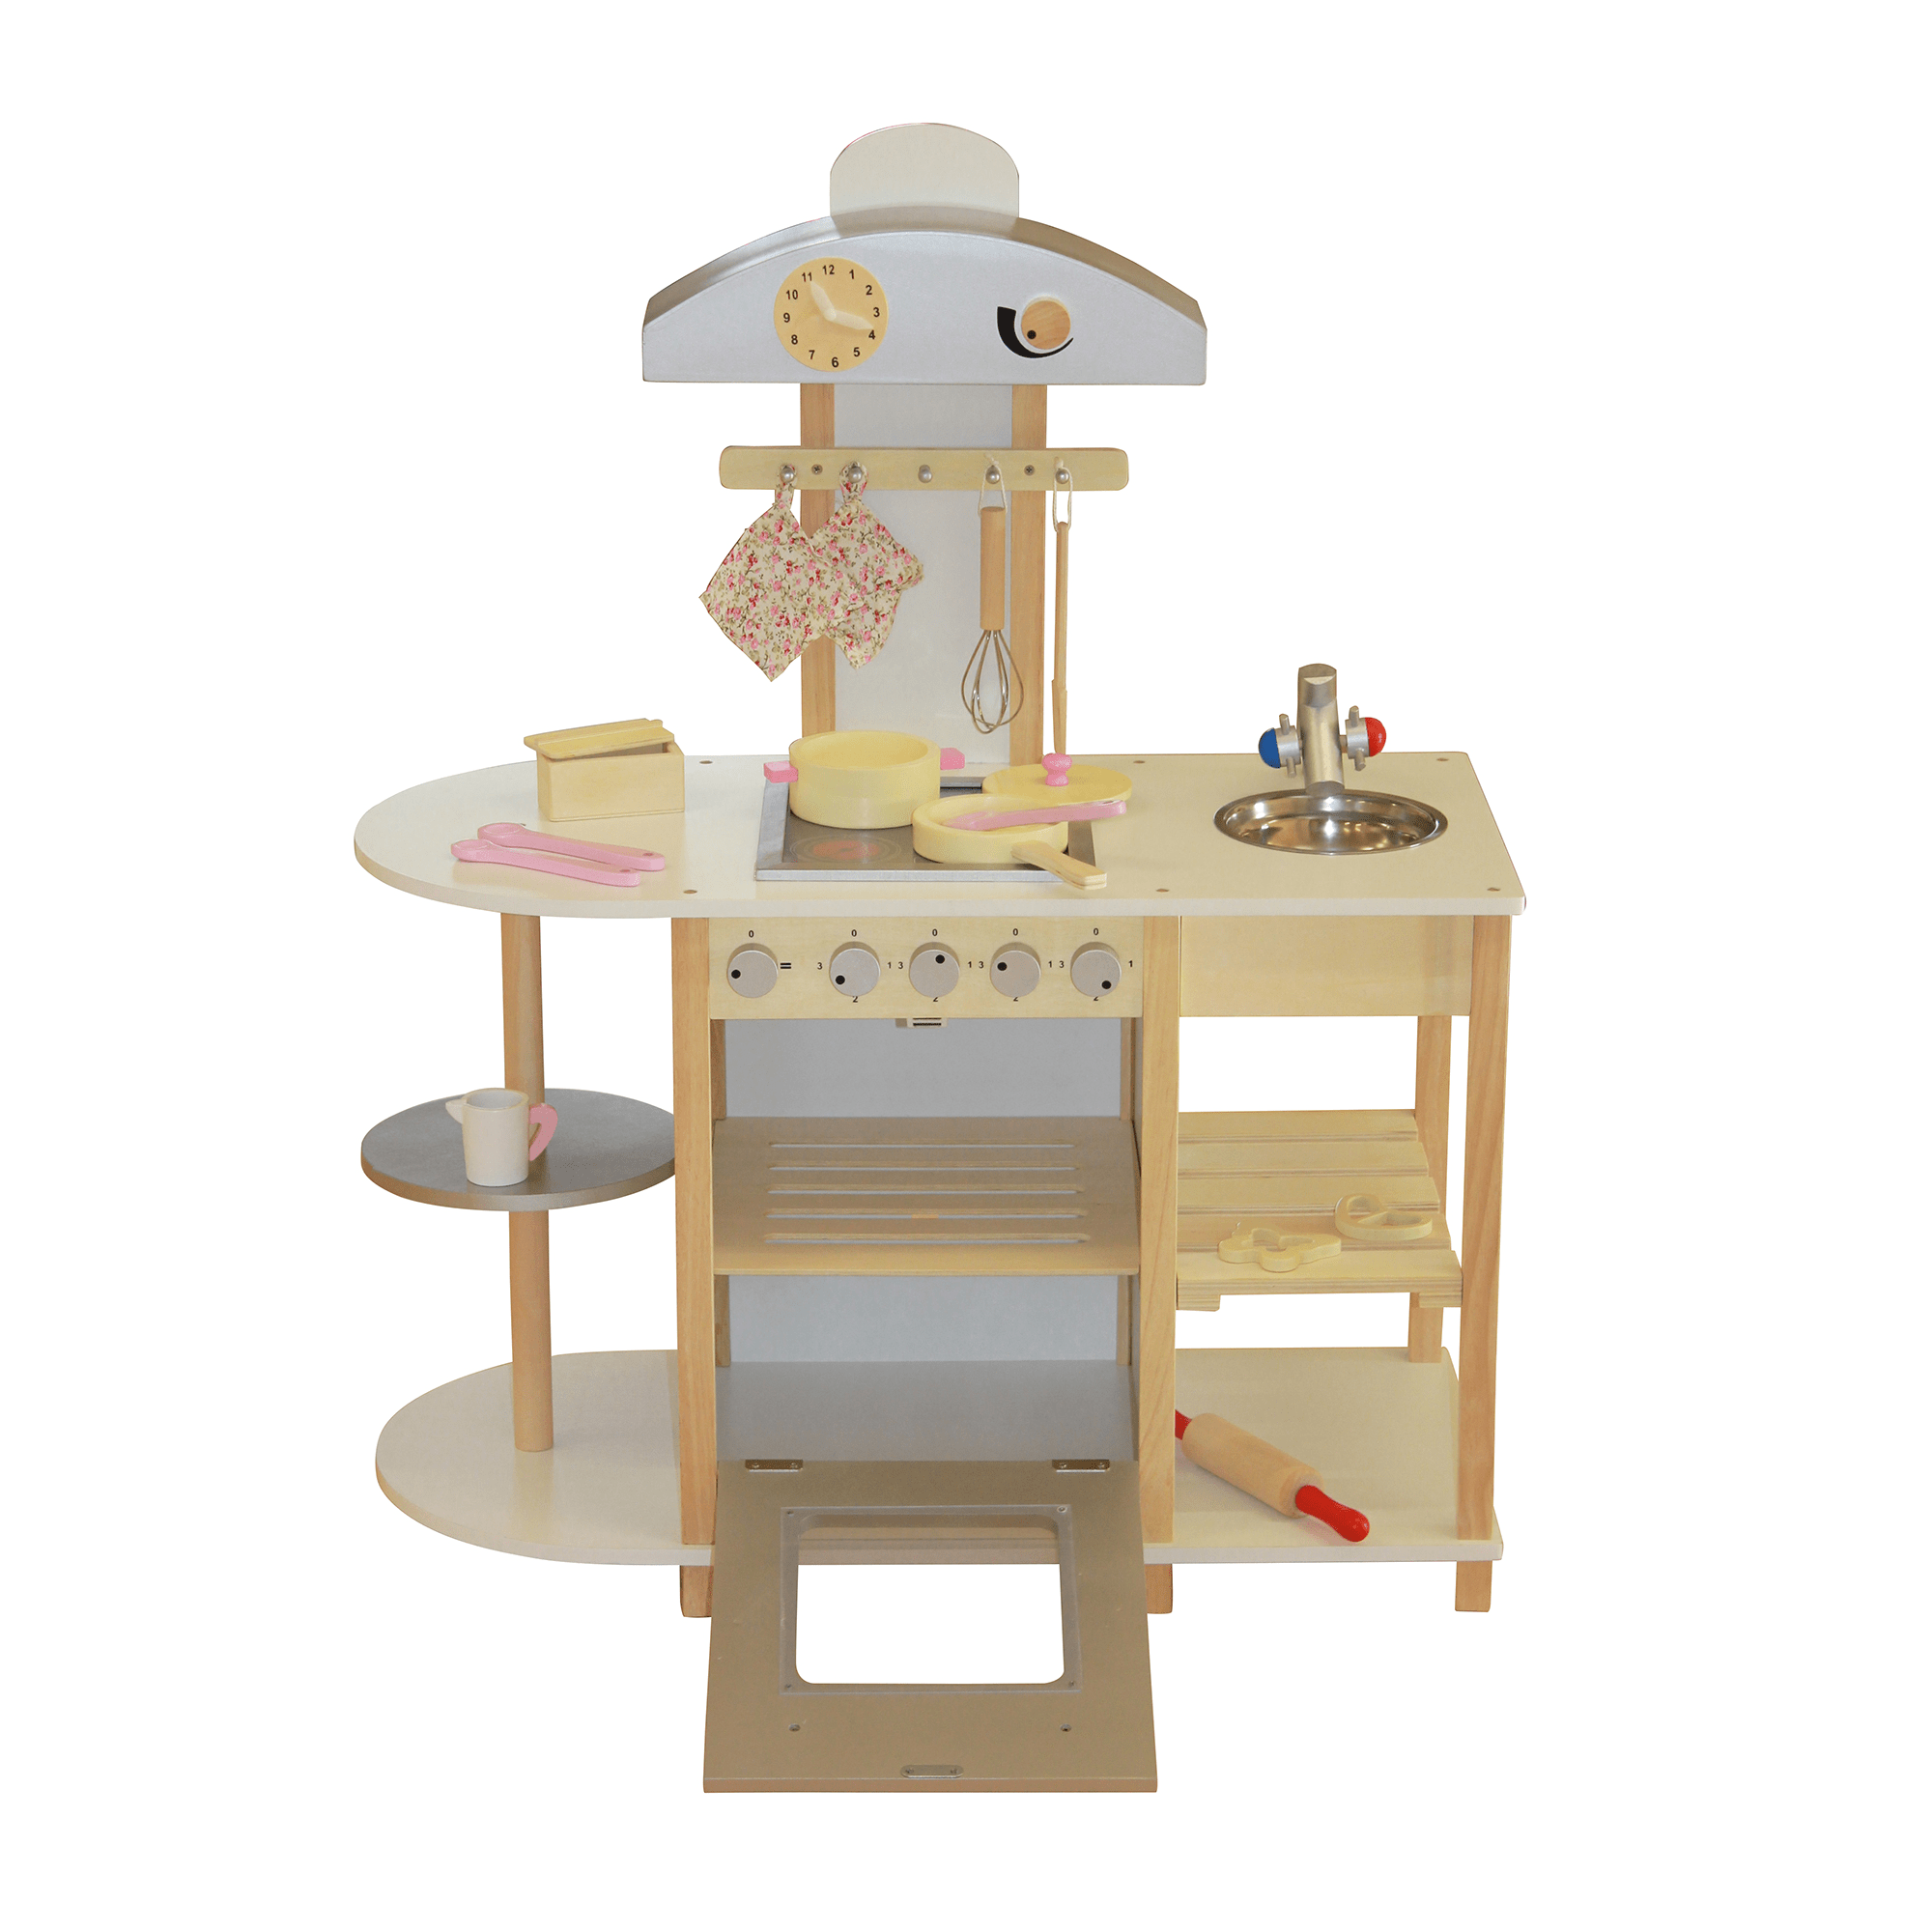 wooden toy kitchen contemporary chairs liberty house toys breakfast bar with accessories